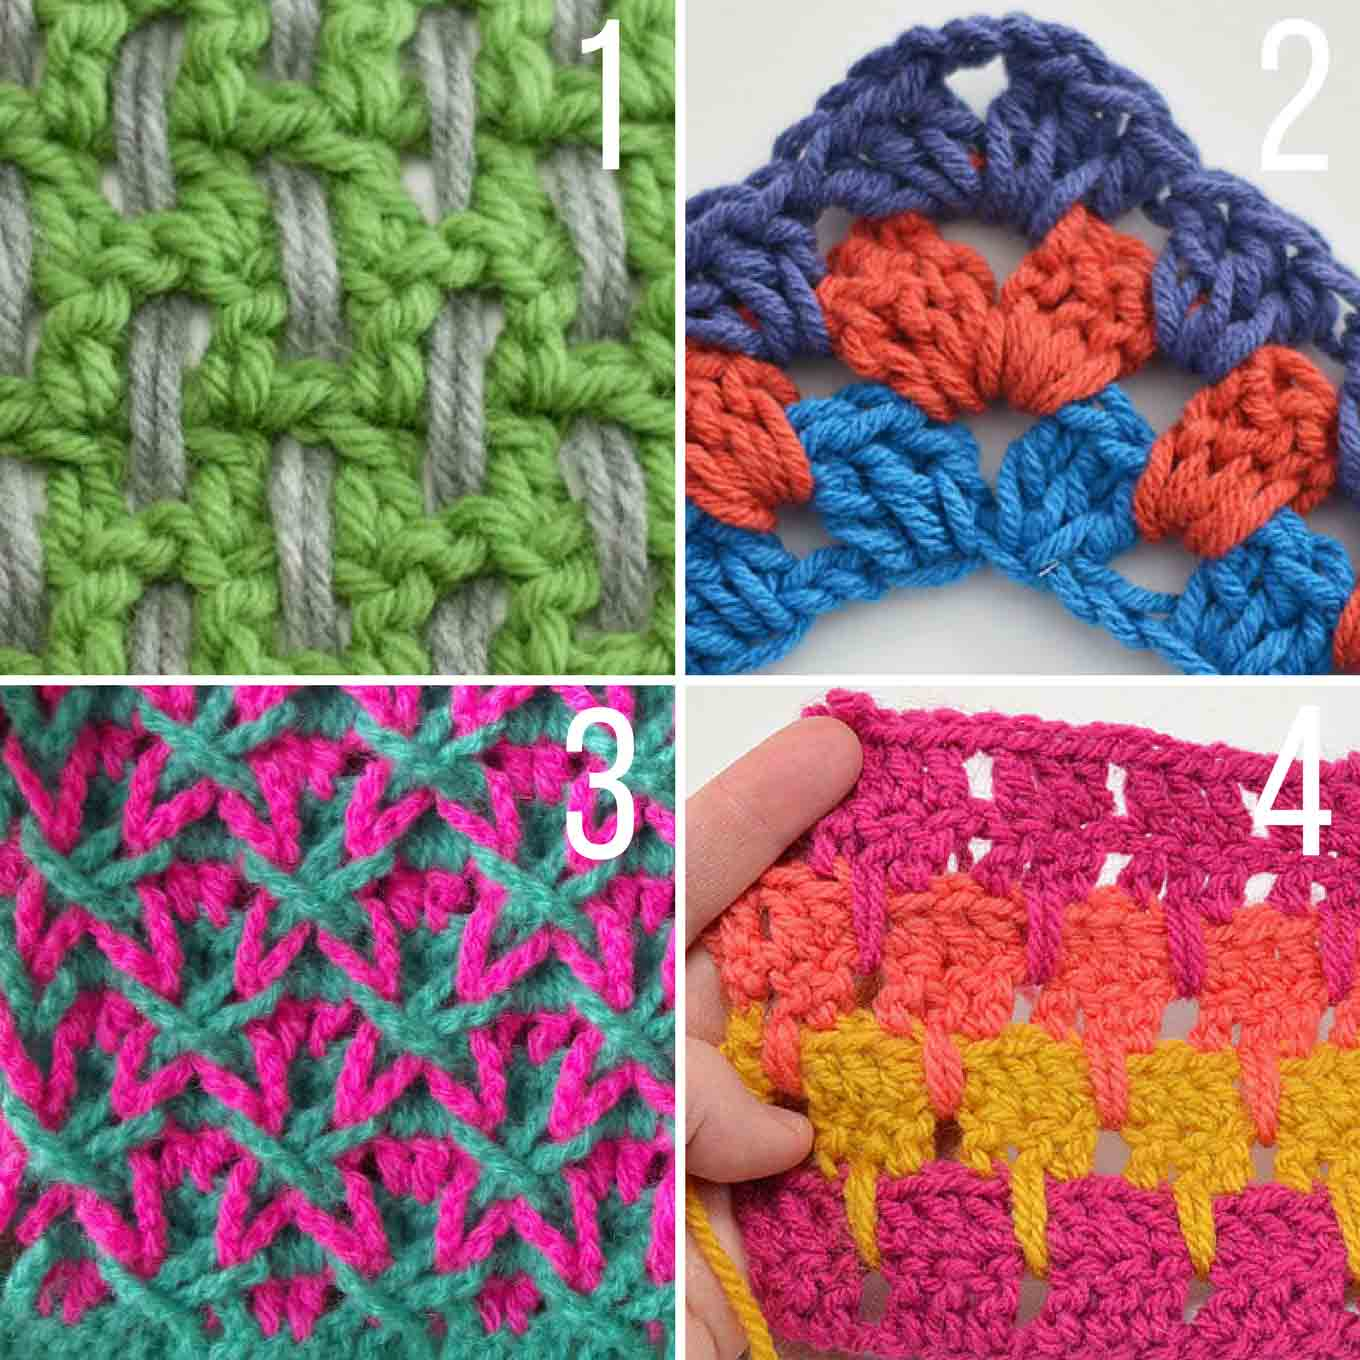 20+ Multi-Color Crochet Stitch Tutorials - Make & Do Crew